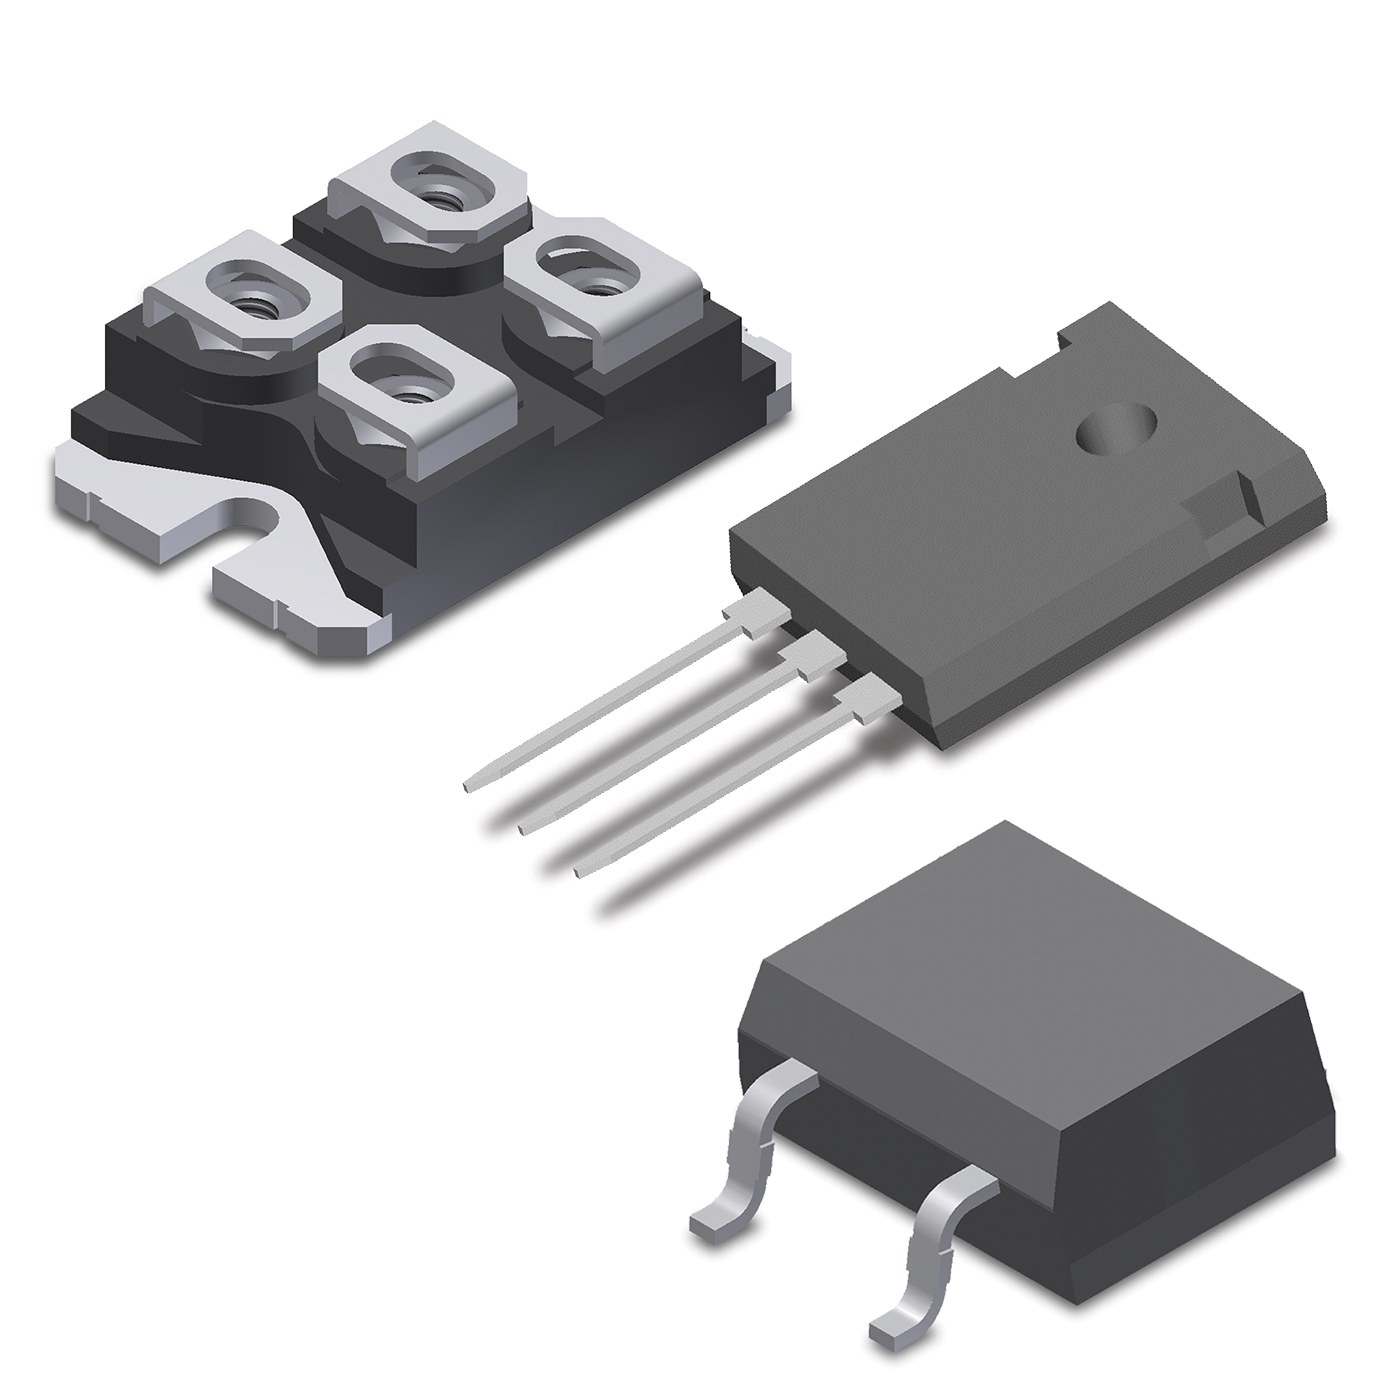 Gen1 Series - N Channel Trench Gate Discrete MOSFETs from